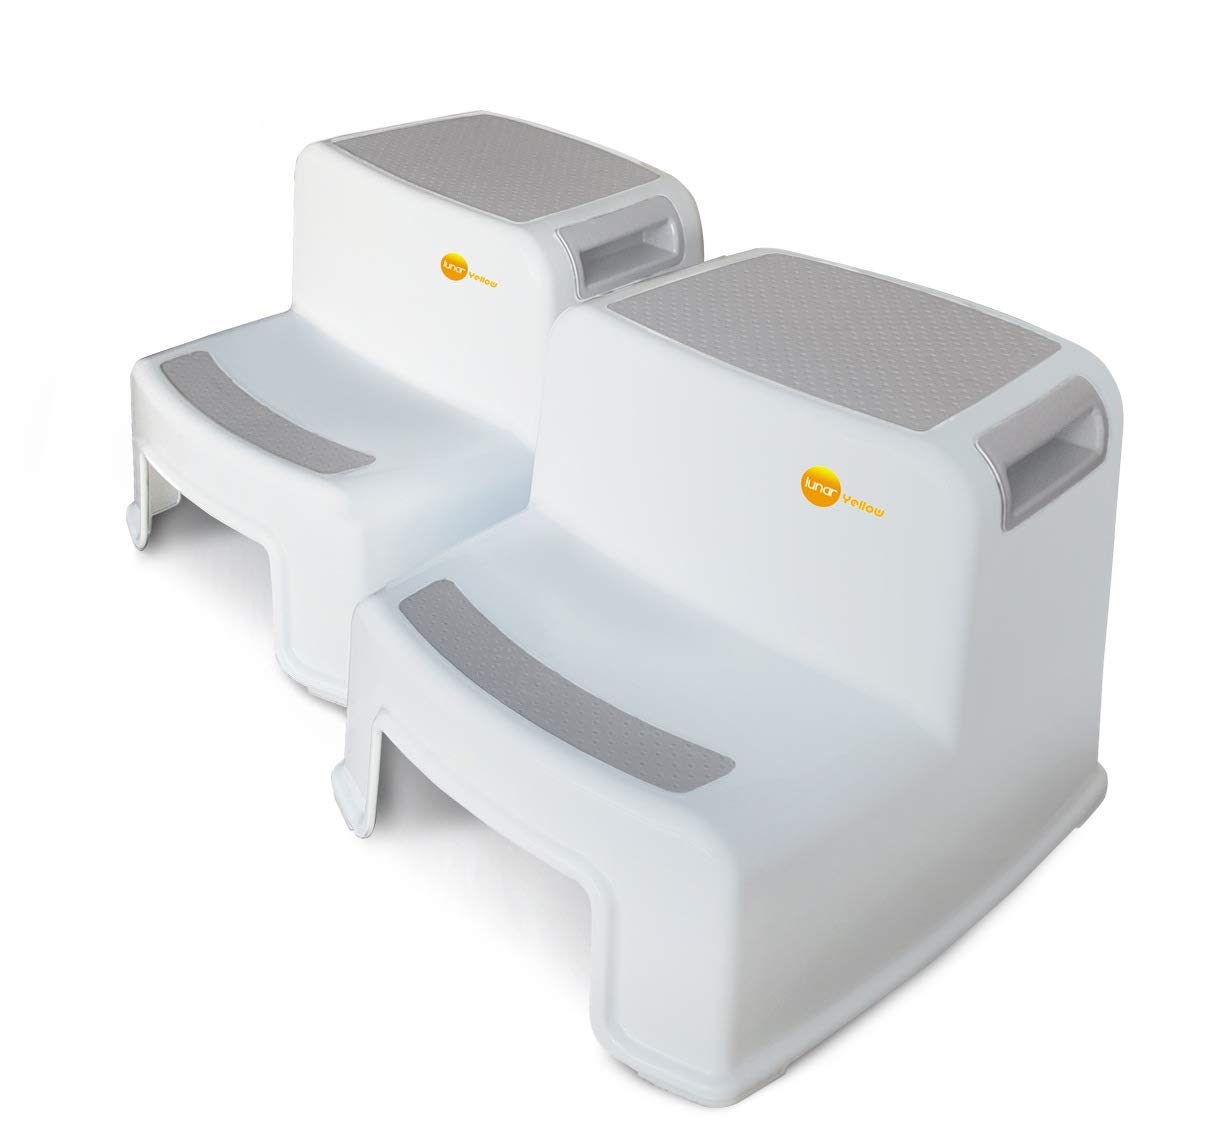 2 Step Stool for Kids and Toddlers (2 Pack) by Lunar Yellow • Heavy Duty Safety Grips • Duel Height • Wide Steps • Lightweight & Portable • Use for Potty Training, Kitchen, Bedside & Bathroom (White) by Lunar Yellow